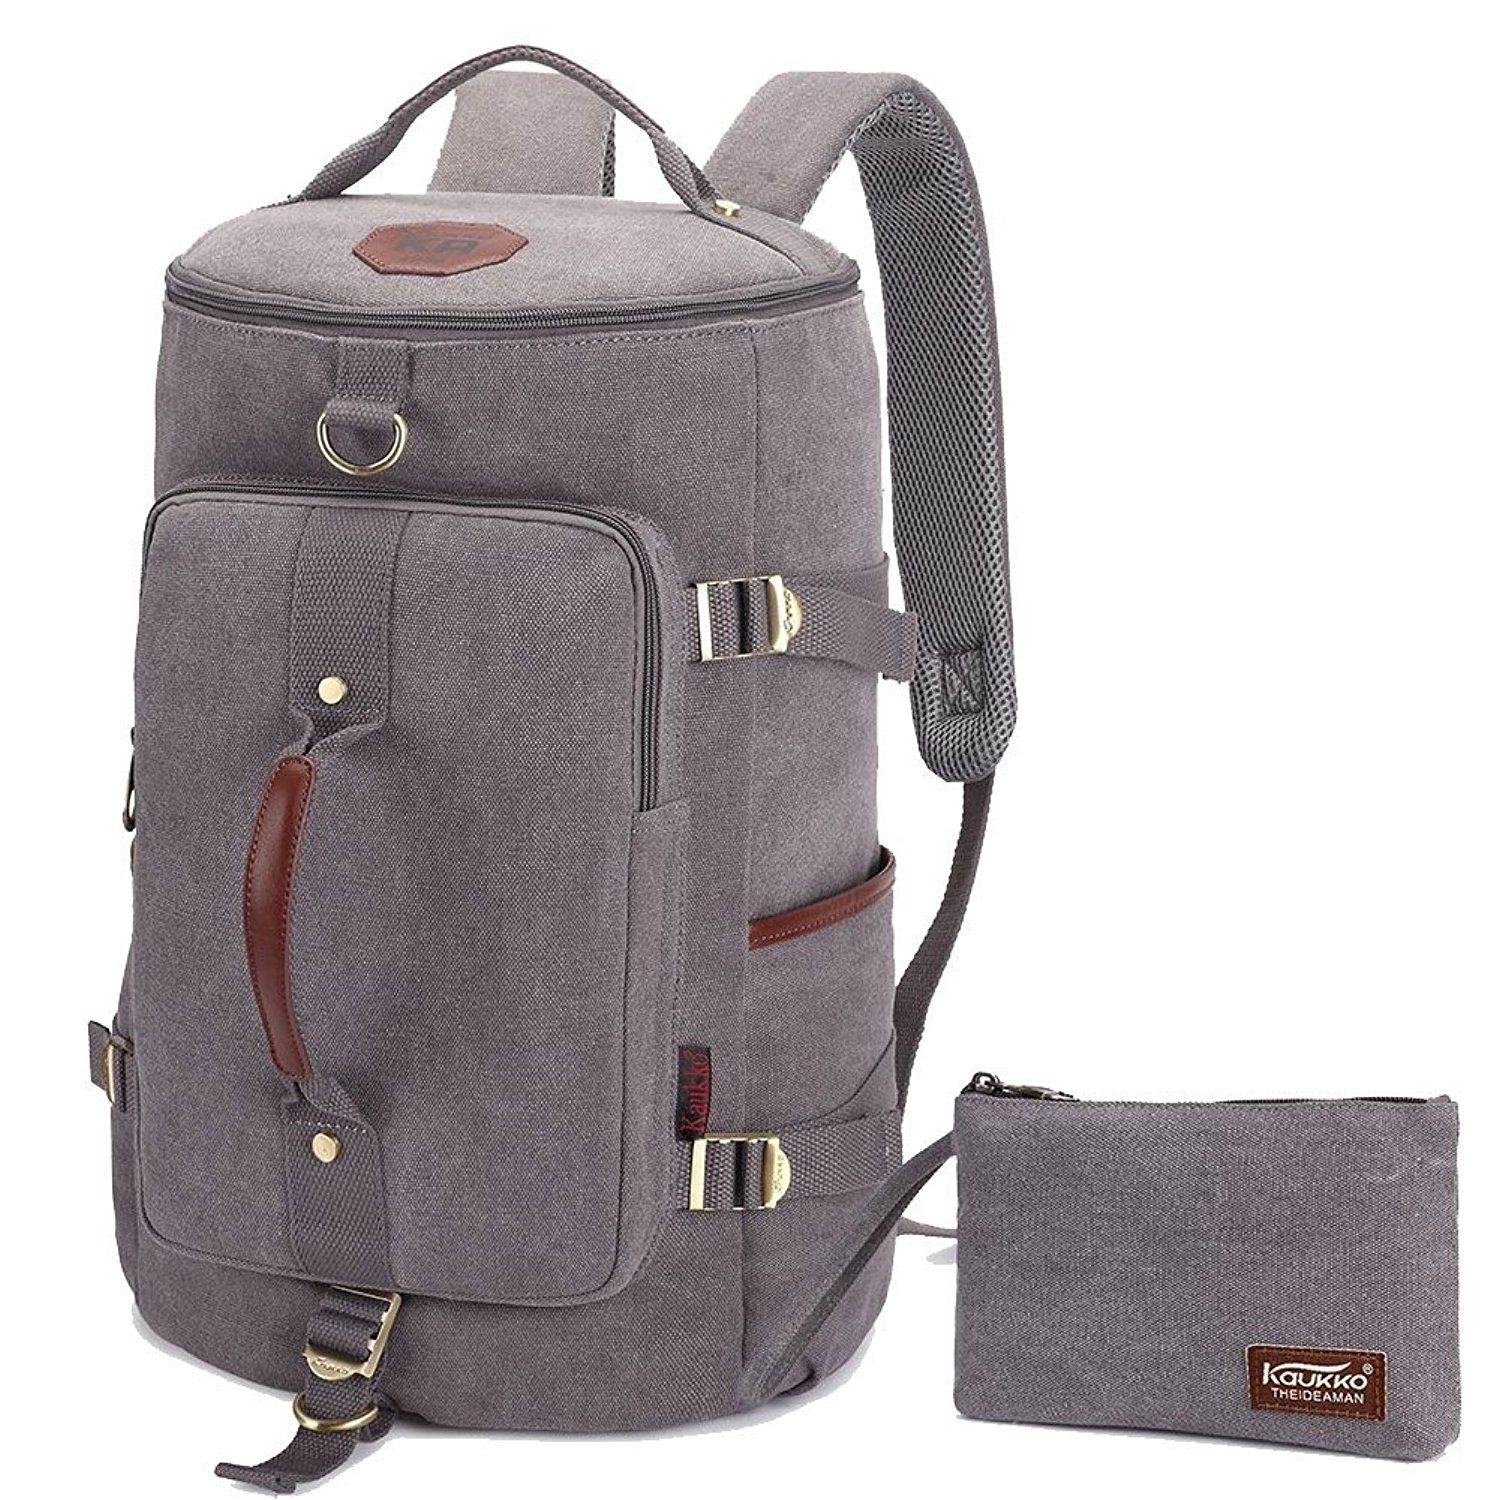 KAUKKO Canvas Backpack Laptop Daypack Hiking Travel Shoulder Bag Duffel Bags    Huge discounts available   Backpacking bags  5e18a598aac8d